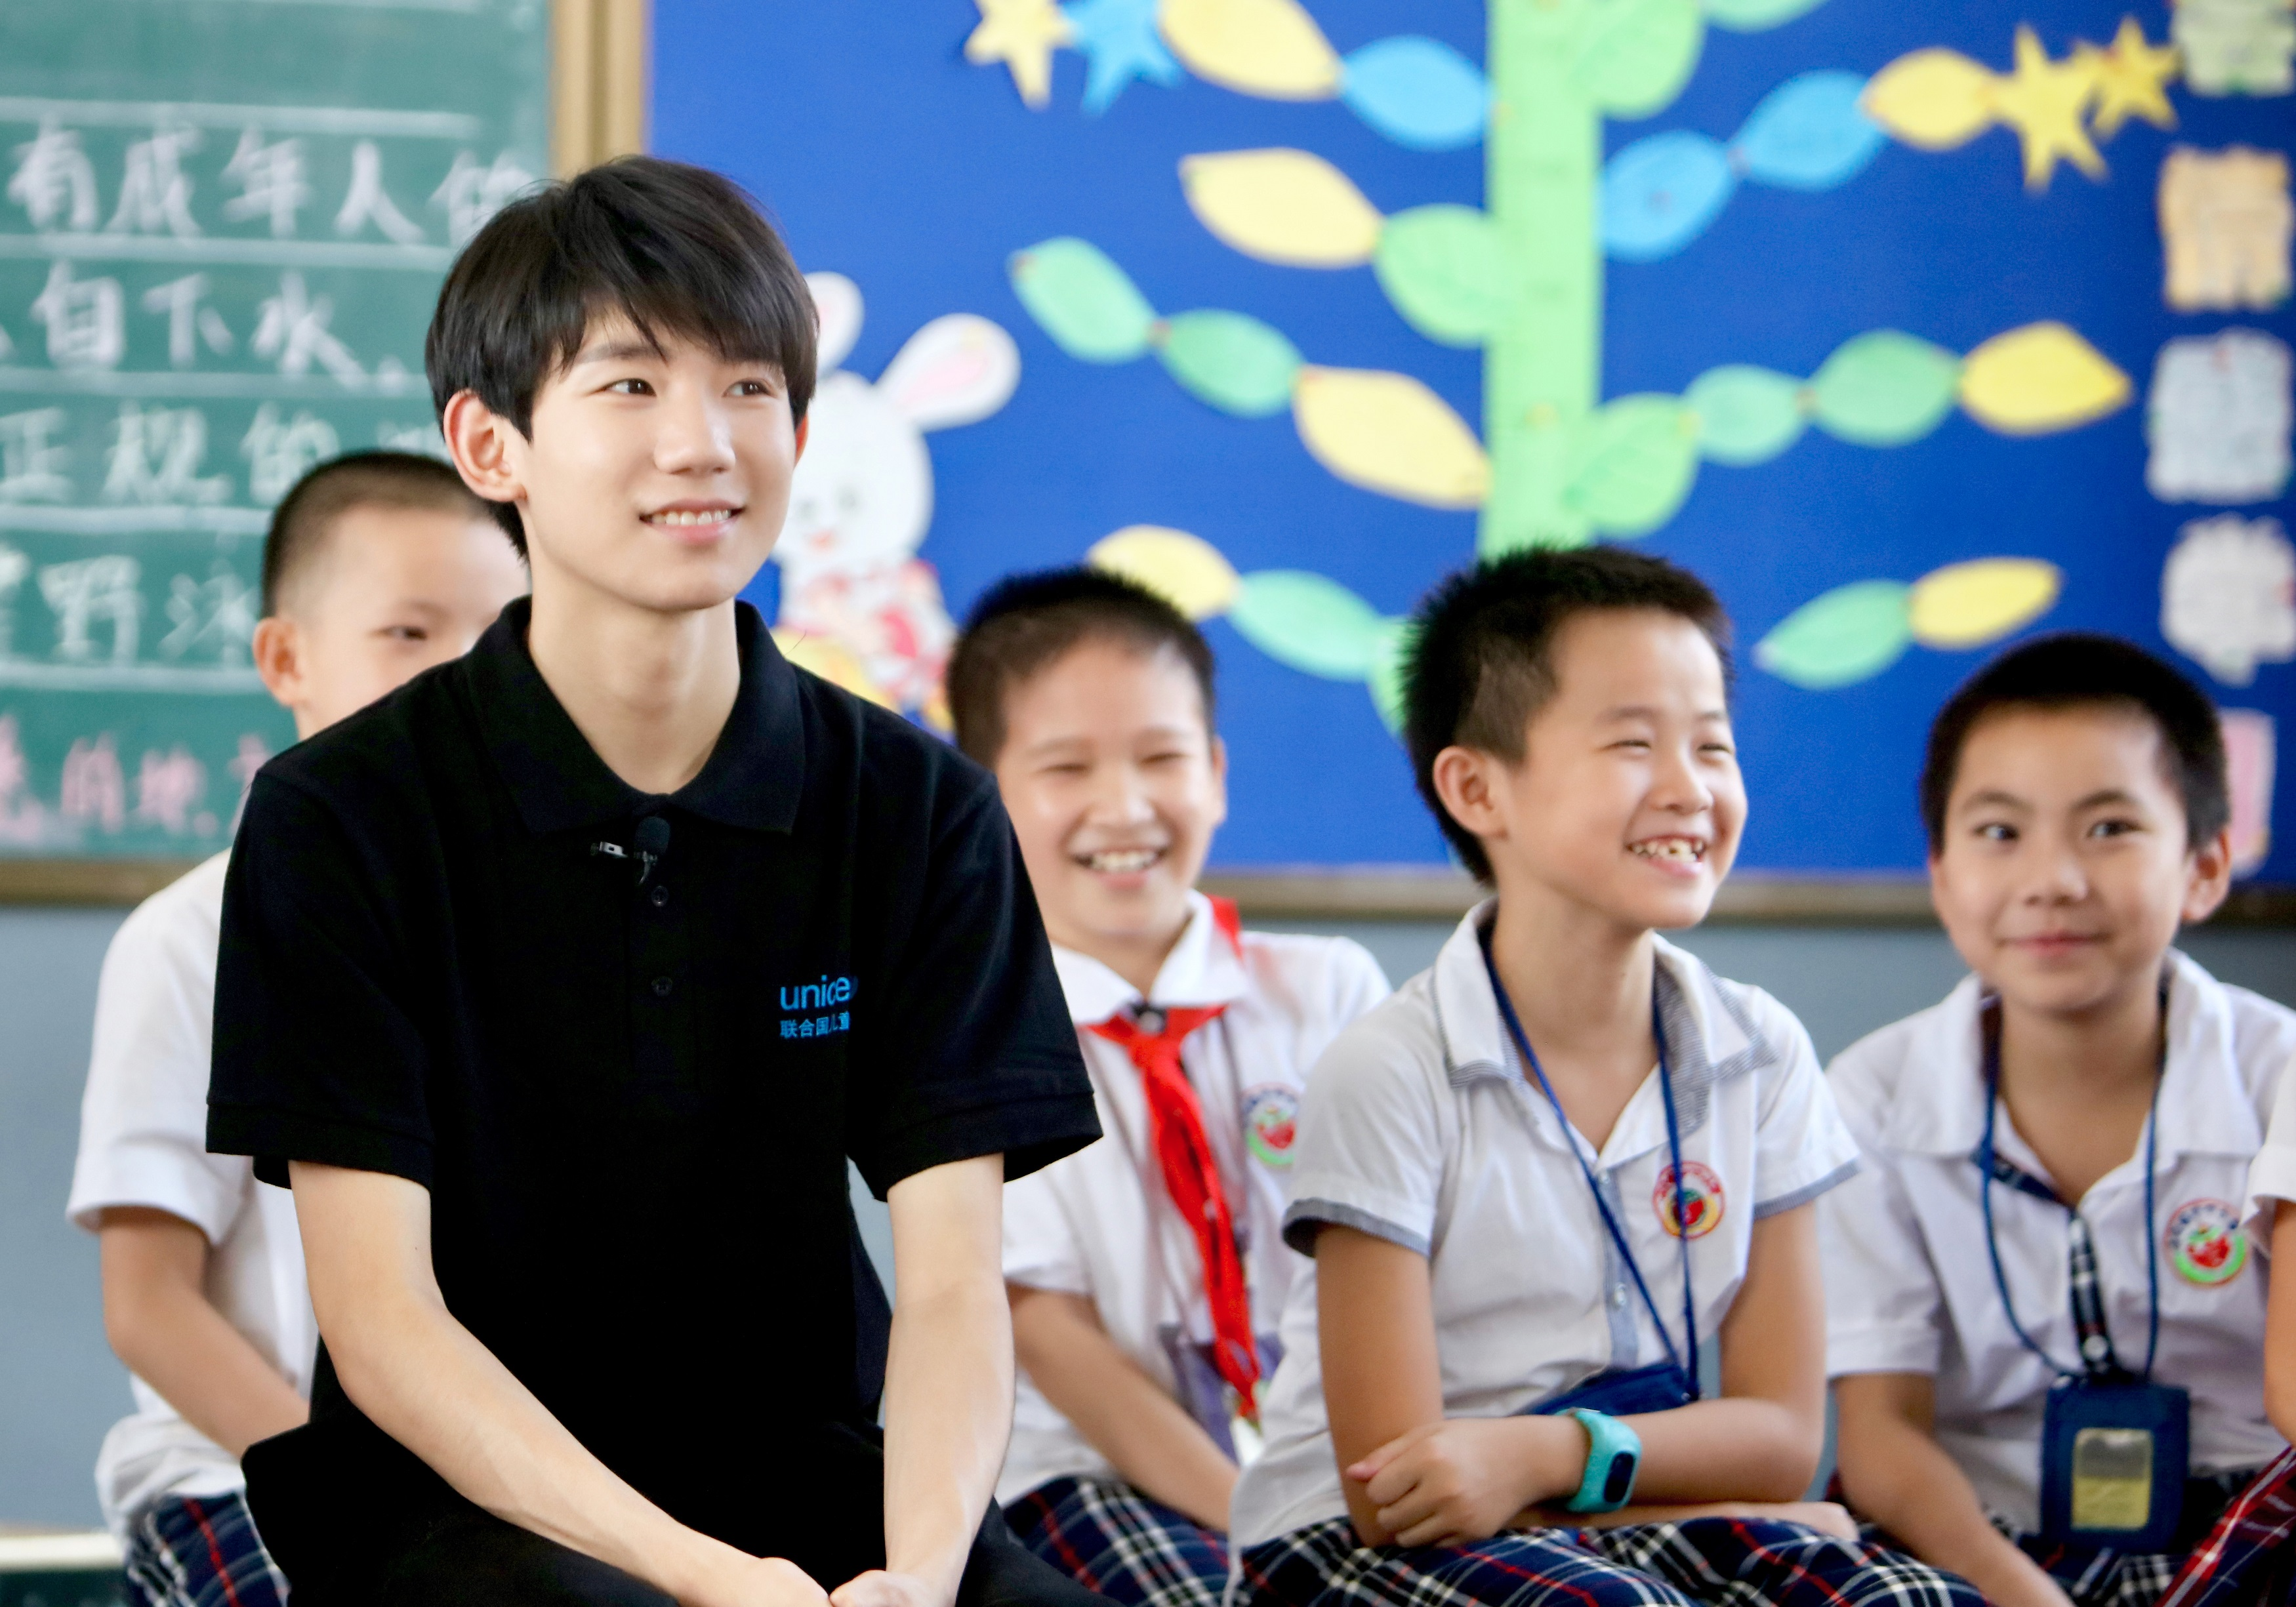 Chinese youth icon Wang (Roy) Yuang sits with school children in a classroom